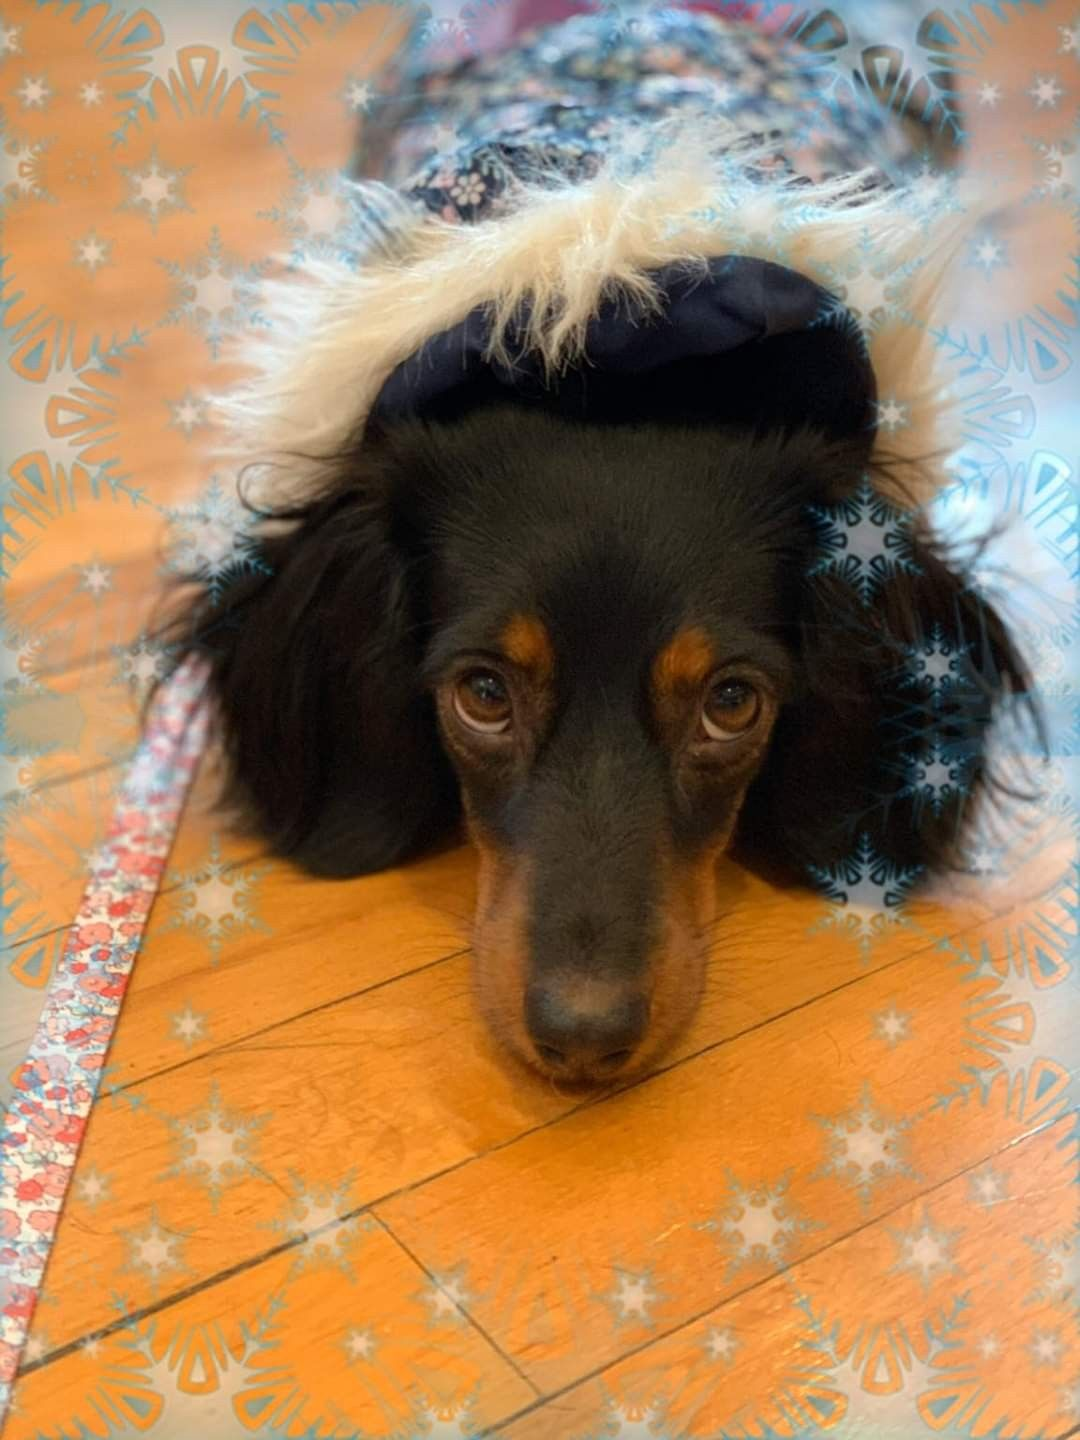 Pin By Dachshund Central On Miniature Dachshunds In 2020 Dachshund Puppy Miniature Dachshund Pictures Dachshund Puppies